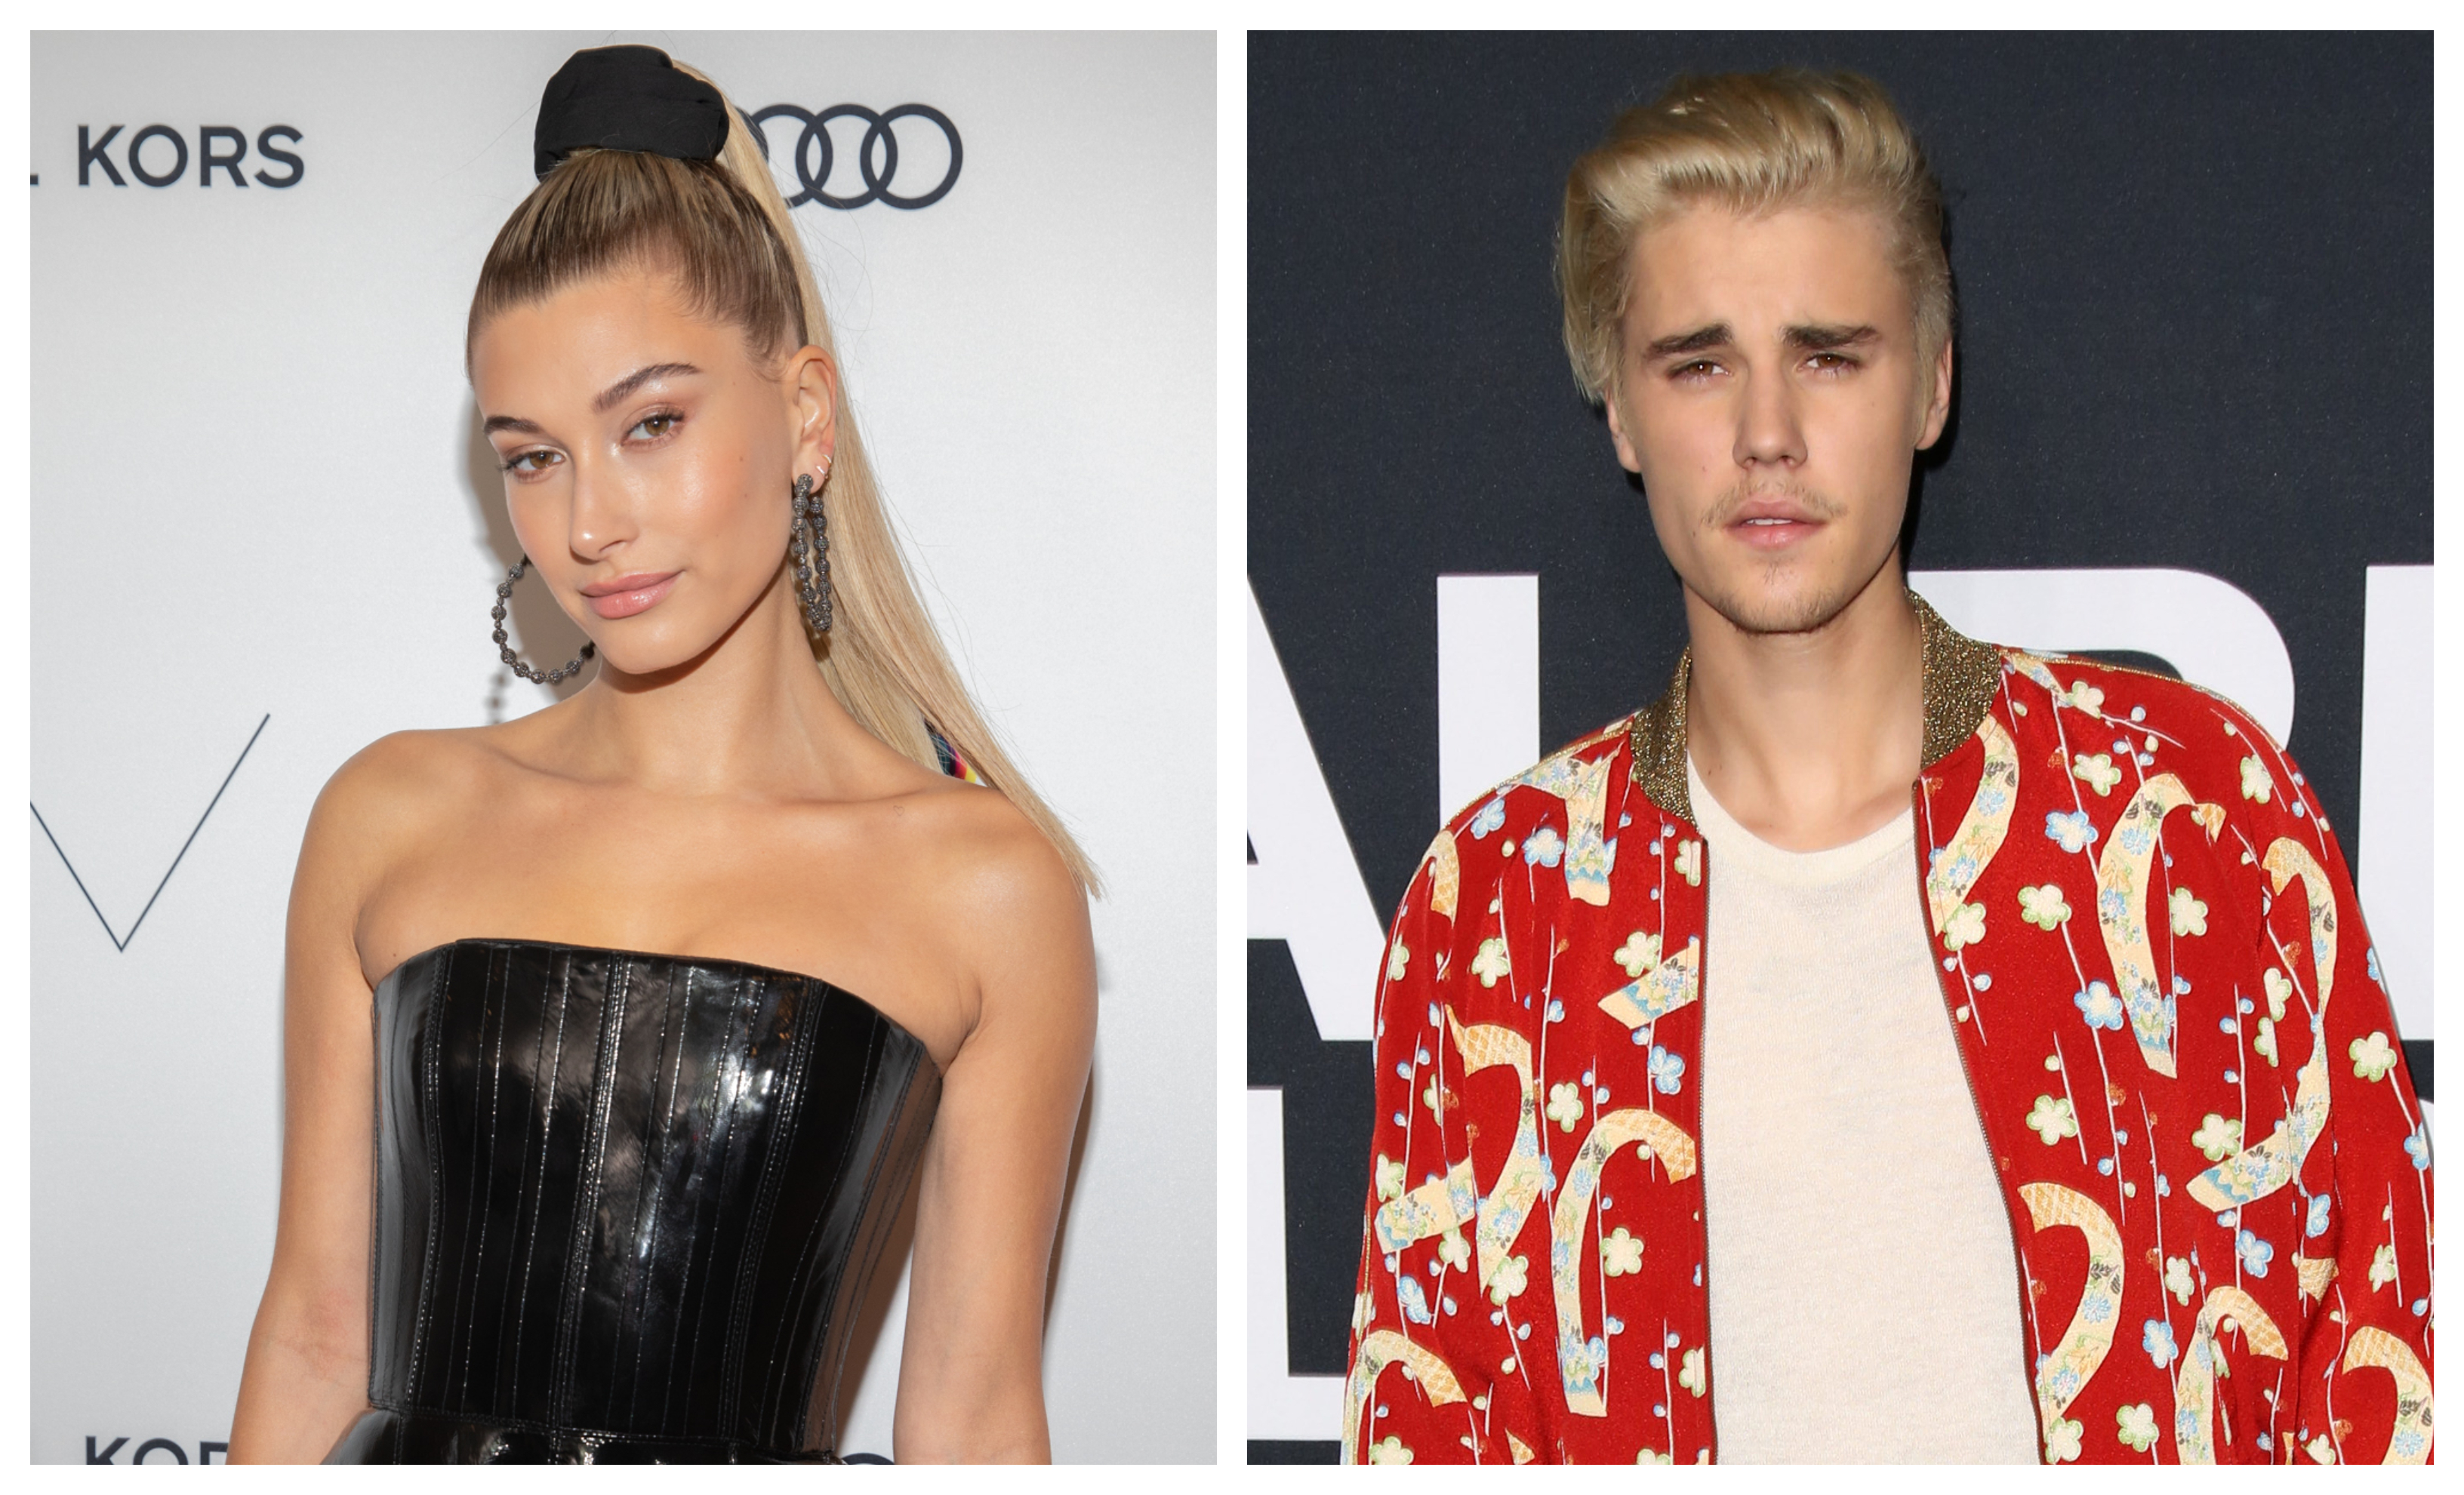 Justin Bieber and Hailey Baldwin are spotted together in Miami. (Photo: WENN)